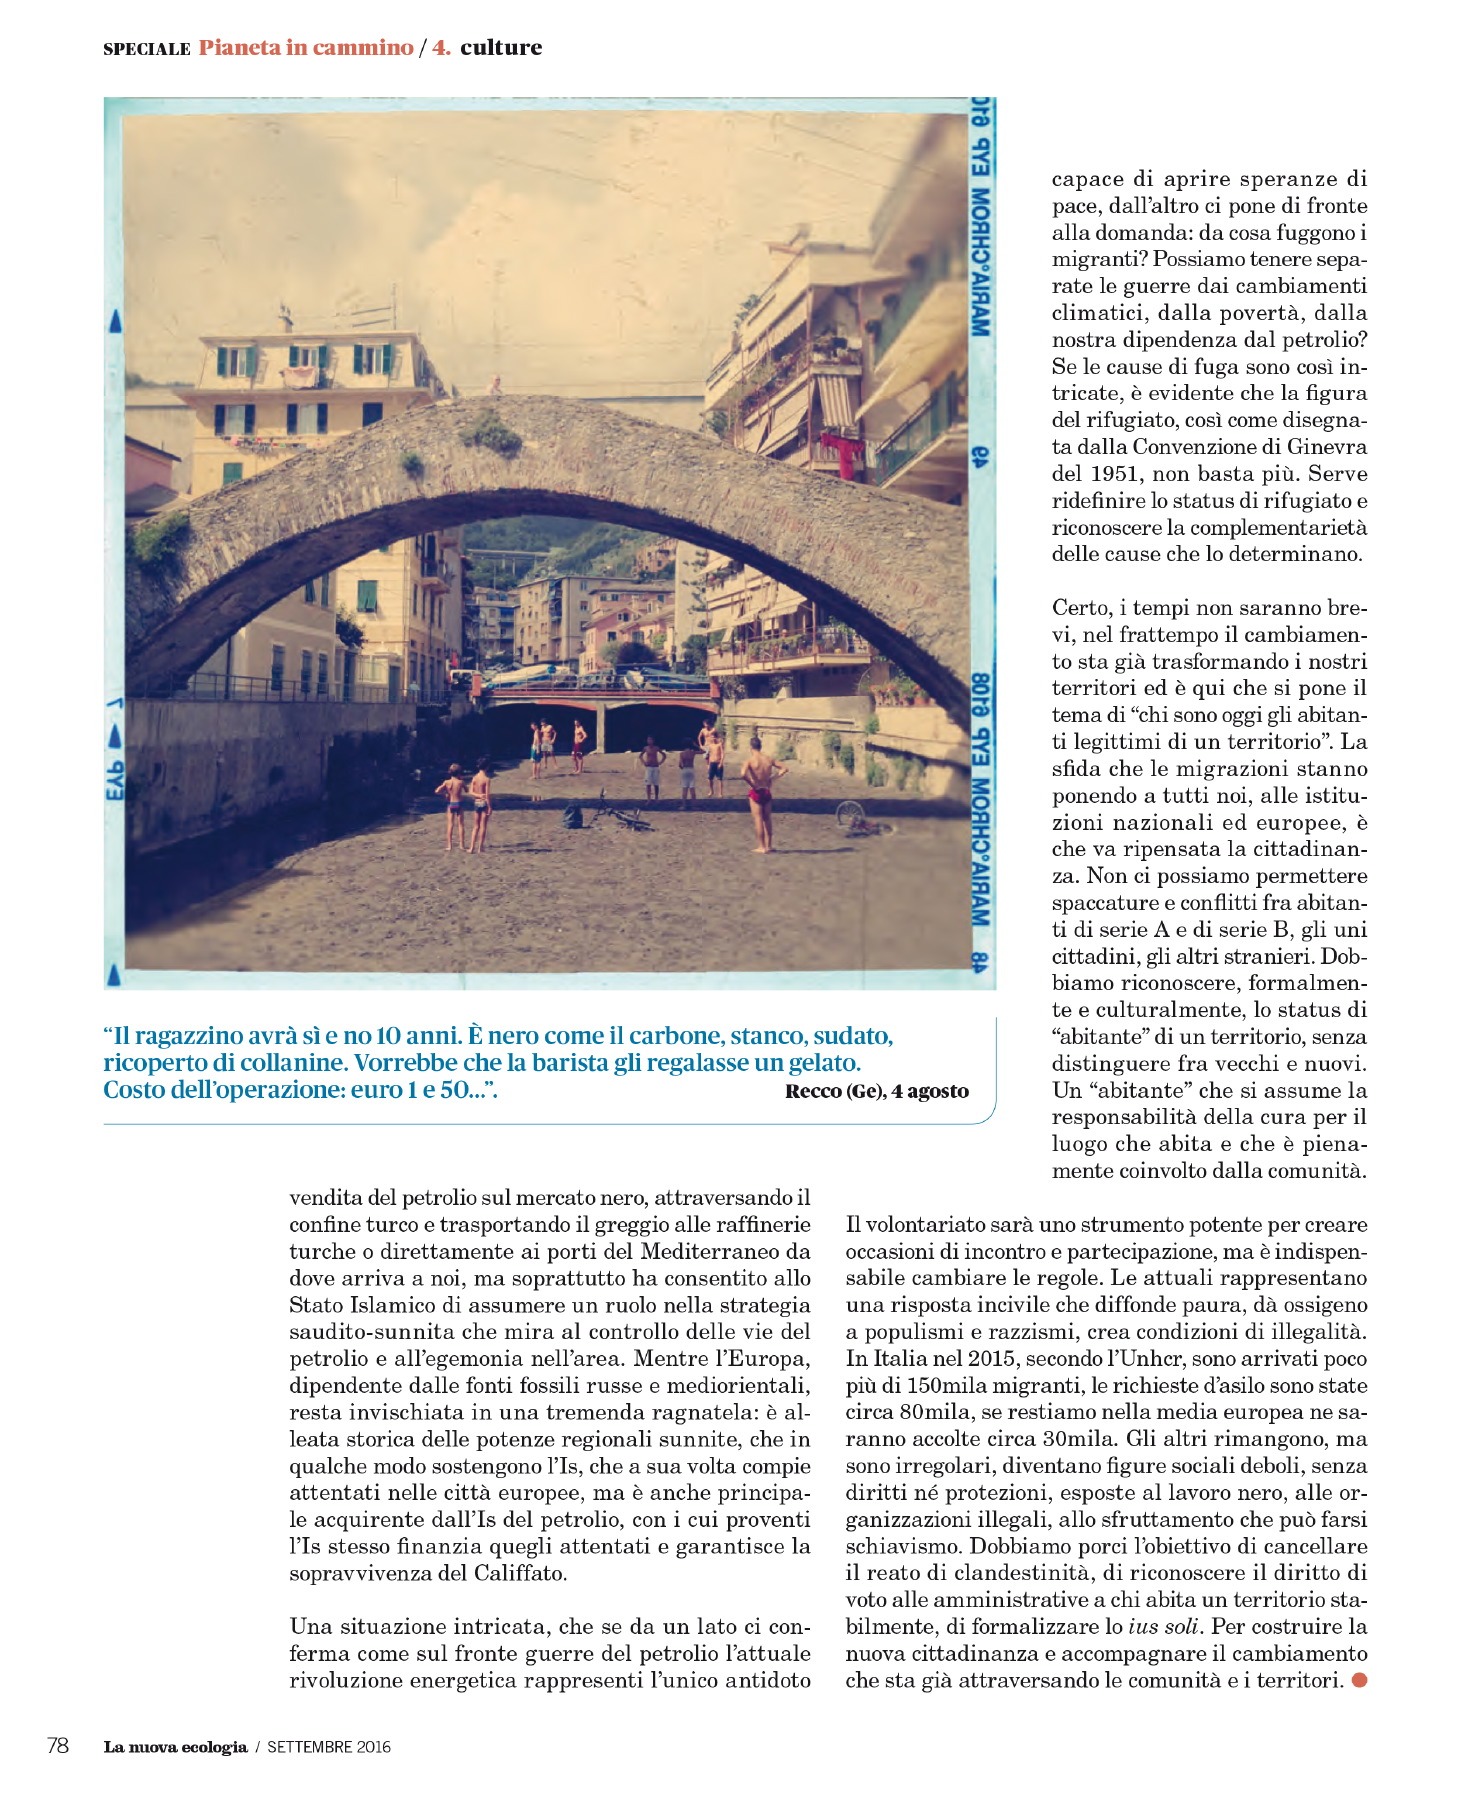 around-the-walk-_-pietro-vertamy-_tearsheet-nuova-ecologia-09